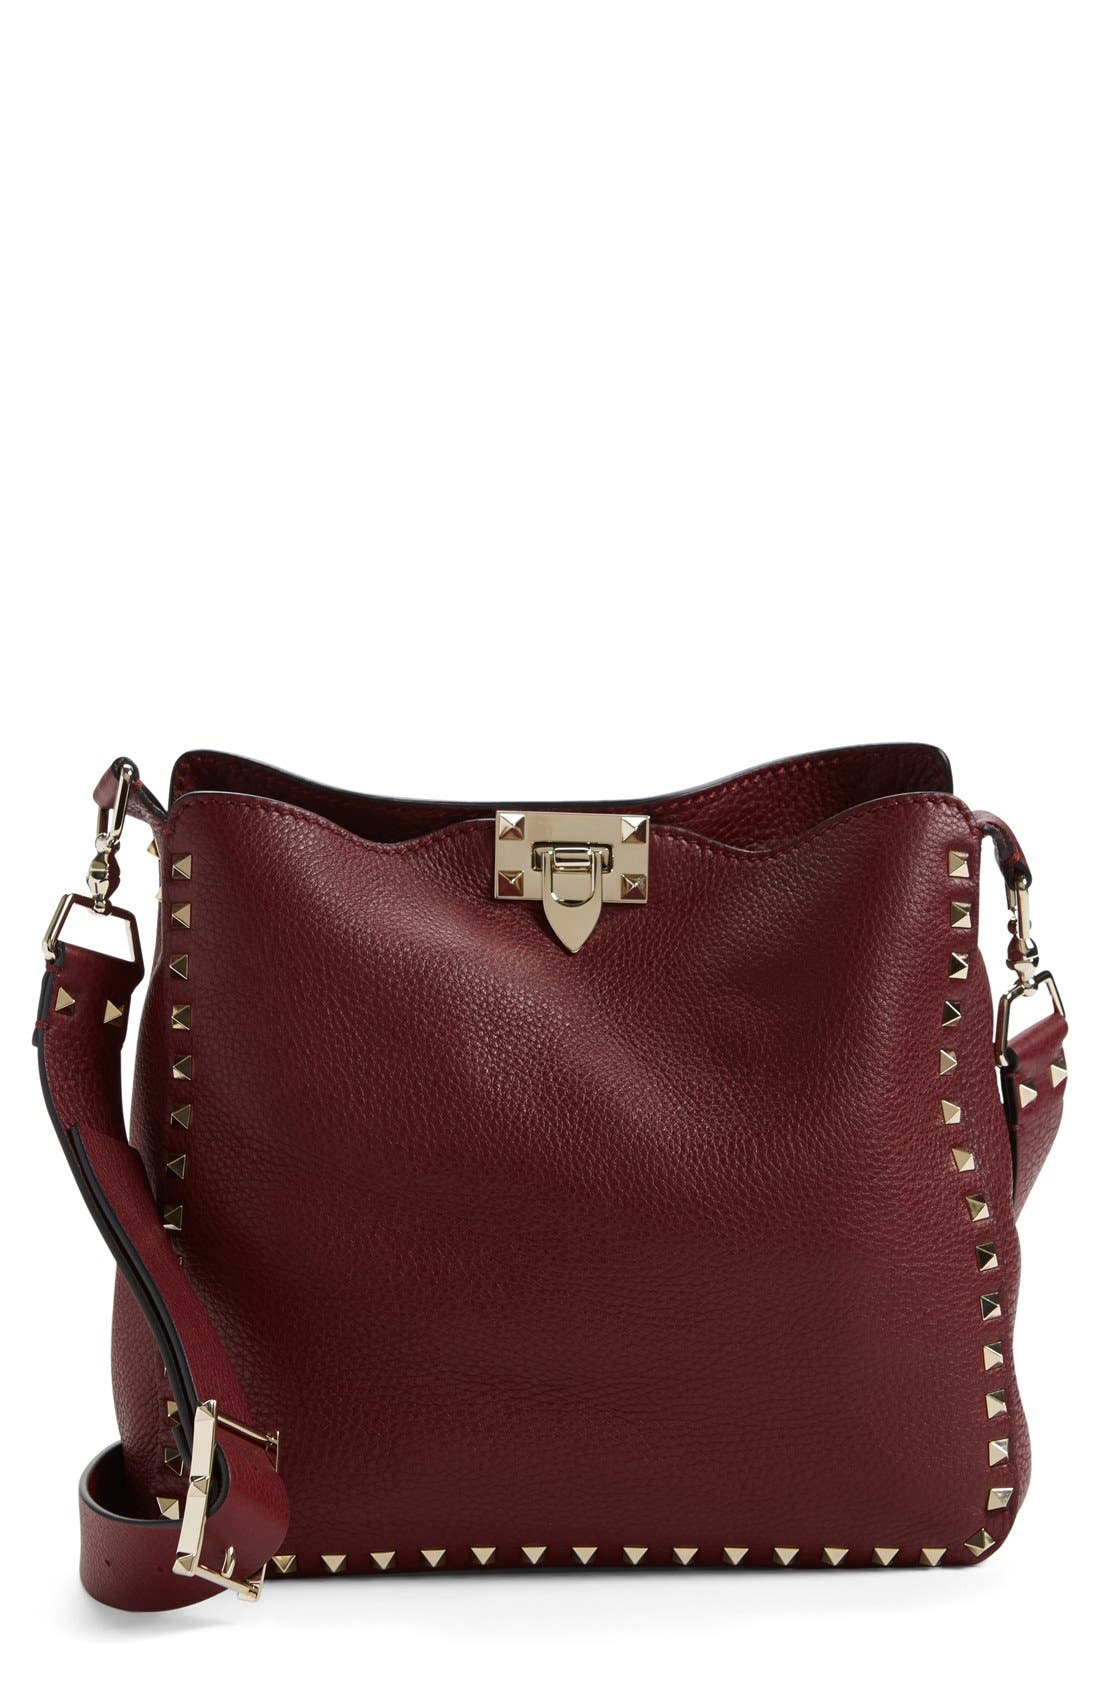 Main Image - Valentino 'Small Rockstud' Leather Hobo Bag